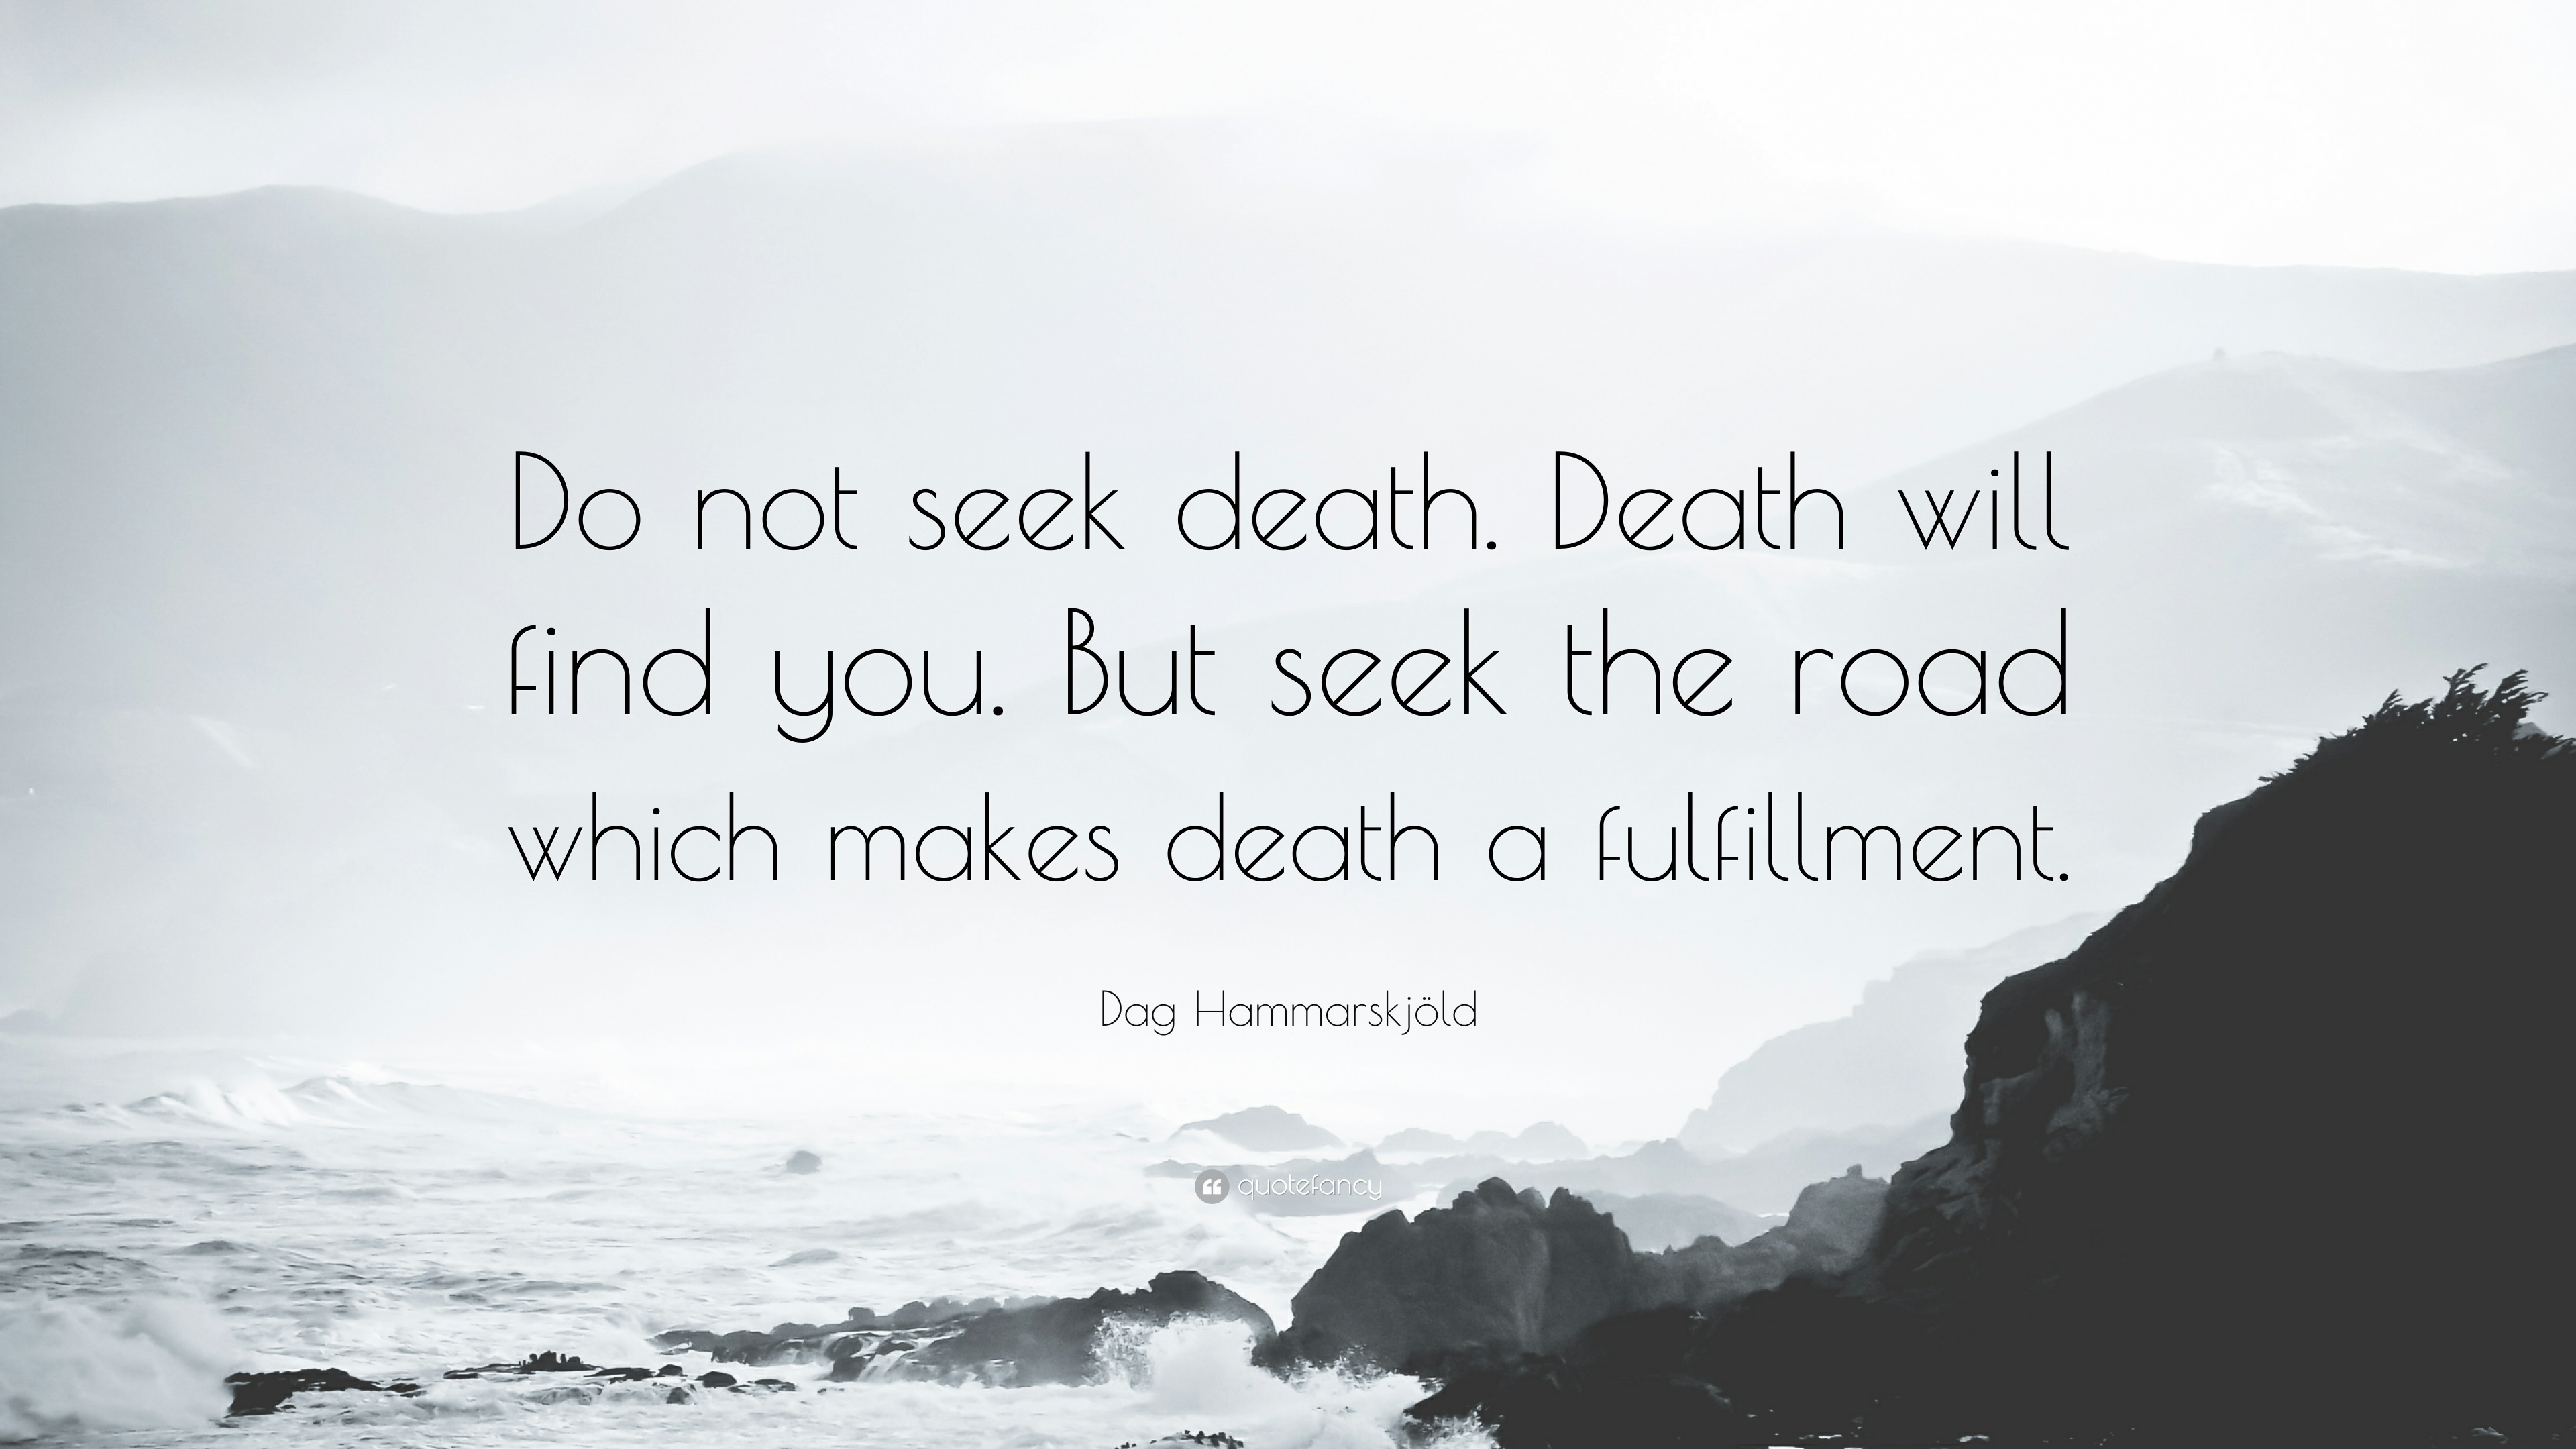 Charmant Dag Hammarskjöld Quote: U201cDo Not Seek Death. Death Will Find You. But